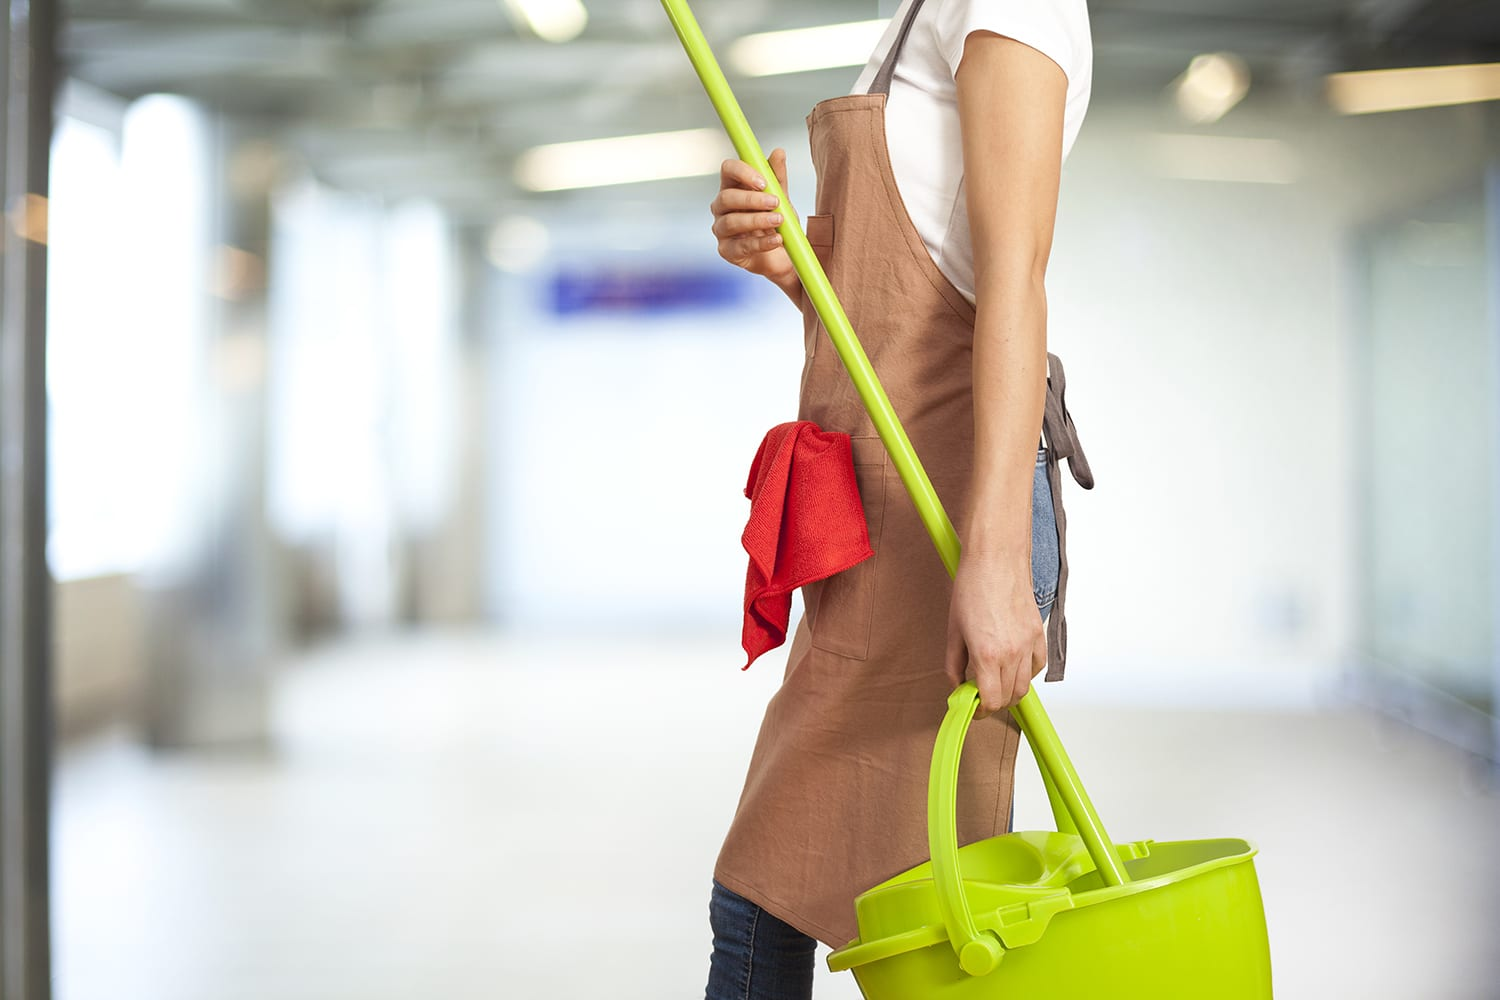 school cleaning service slc